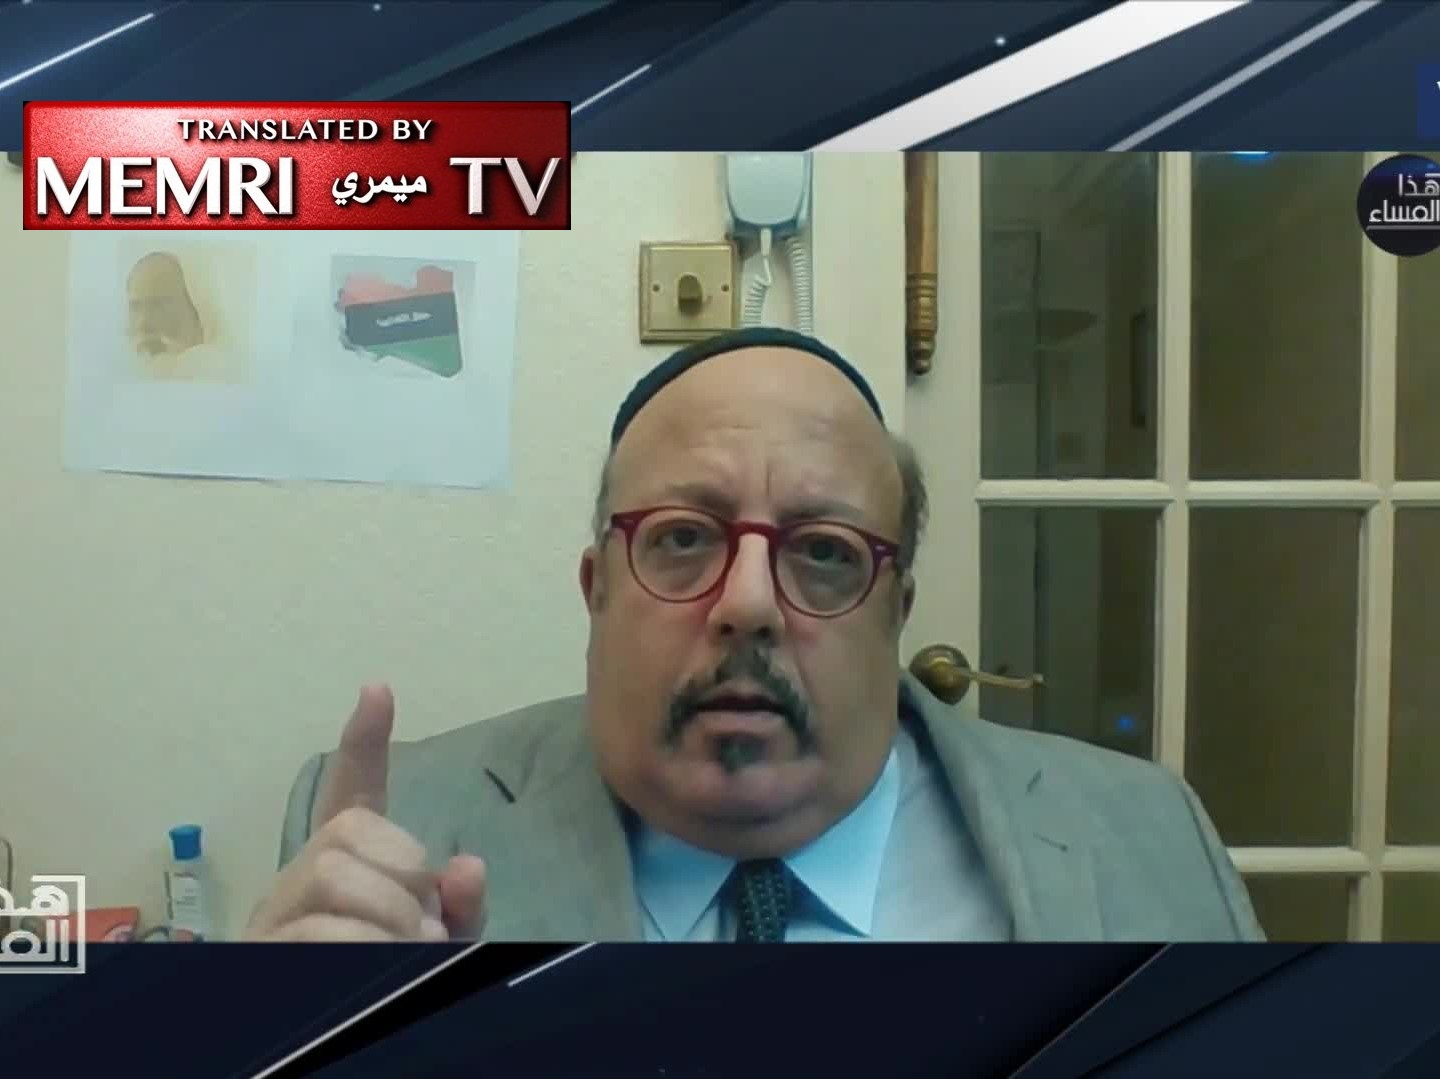 Raphael Luzon, U.K.-Based President of the Union of the Jews of Libya: We Do Not Want to Return to Libya, But Demand Our Rights; Want to Be Able to Visit Where Our Ancestors Lived, Like Moroccan and Tunisian Jews Can